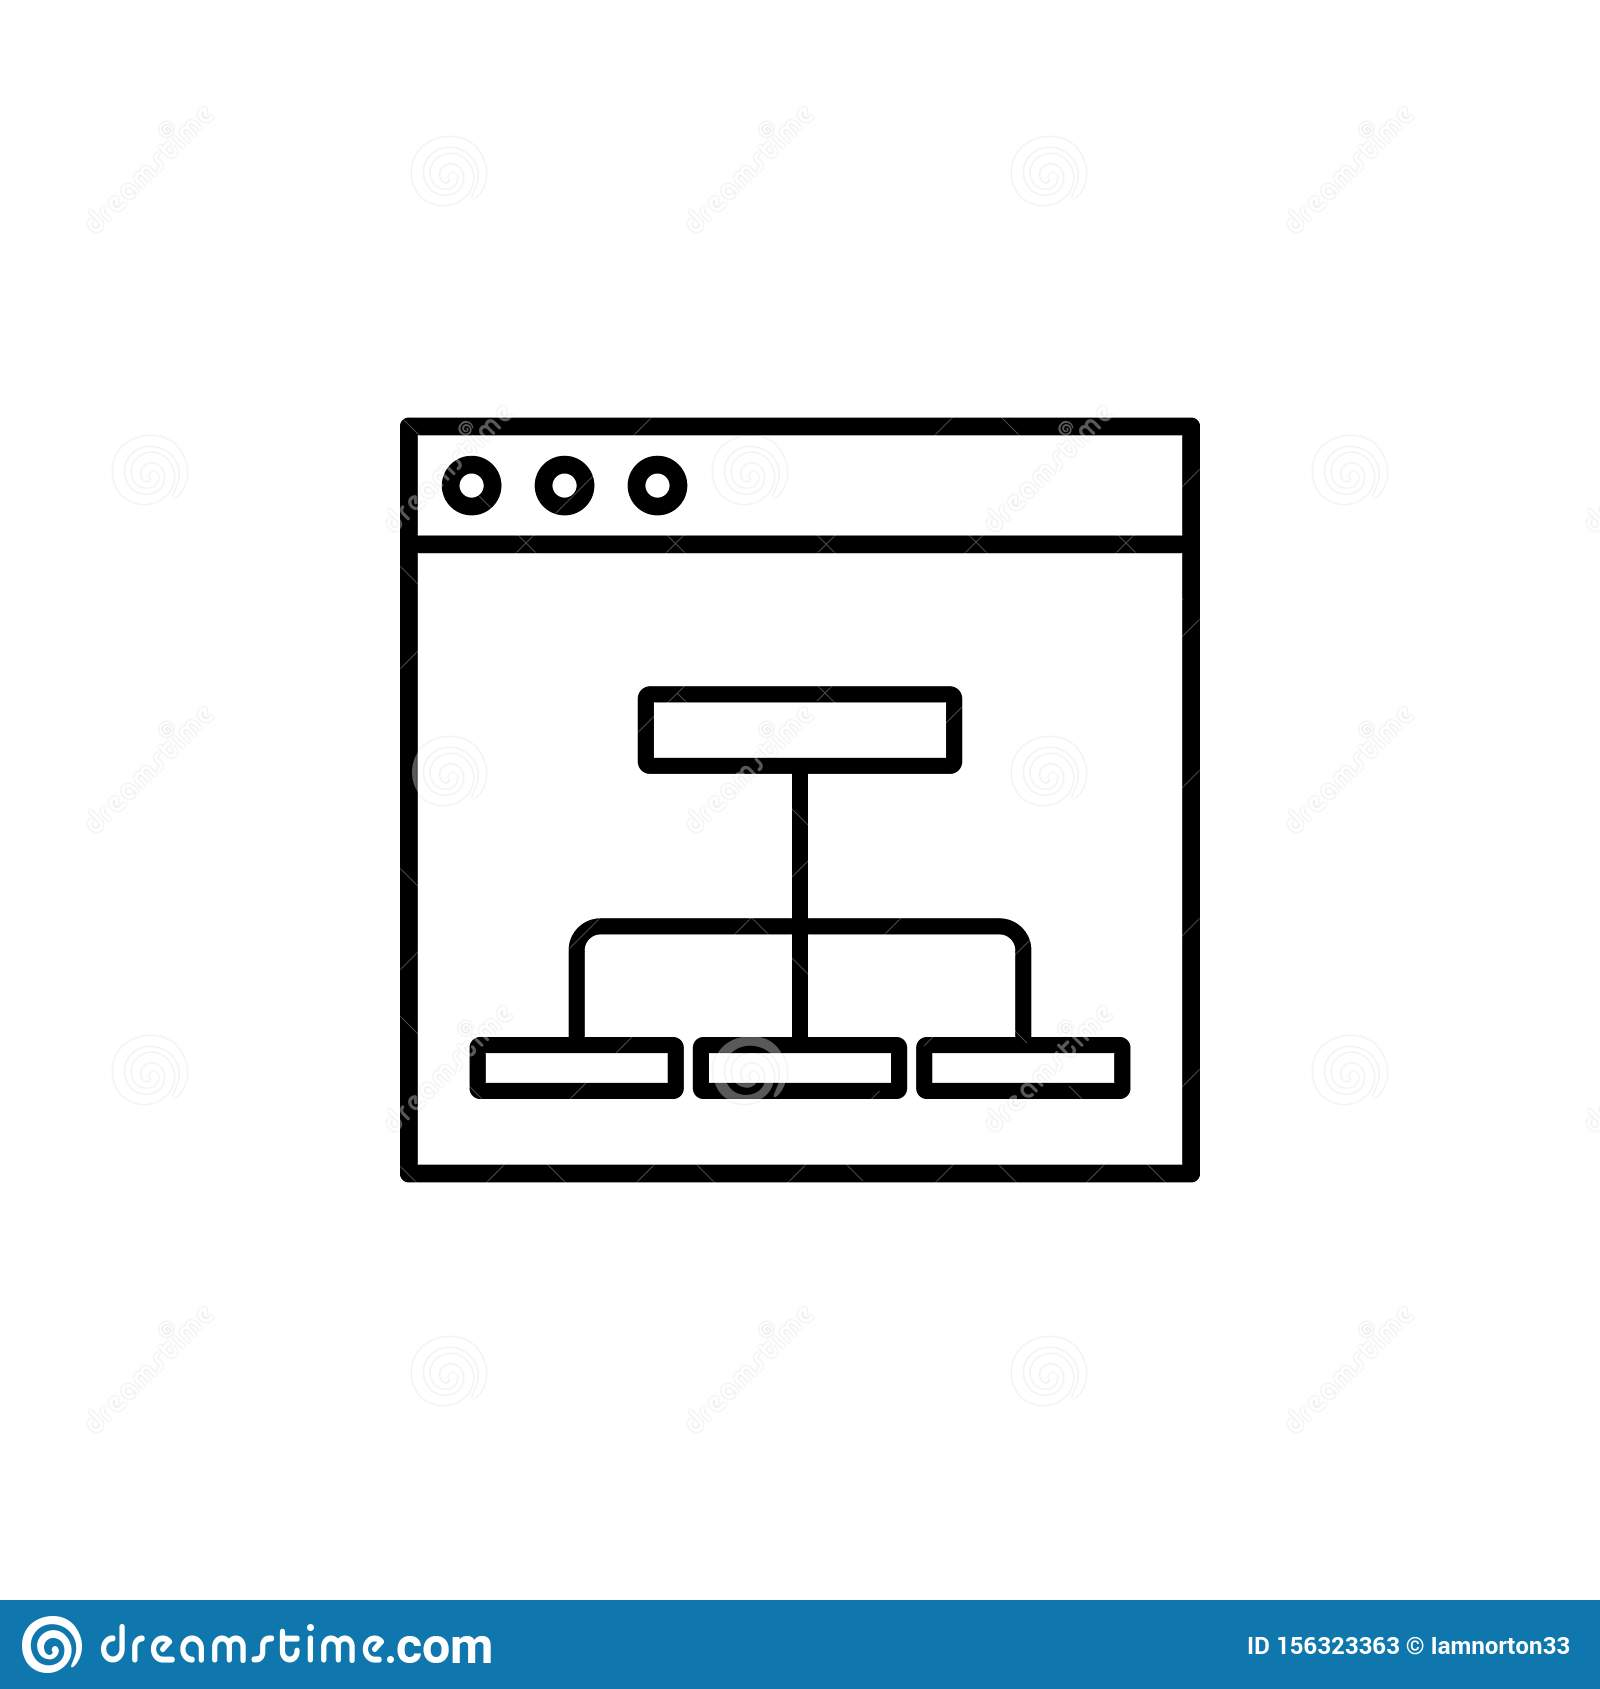 flowchart, mapping icon. Simple outline vector of Web Design Development set icons for UI and UX, website or mobile application